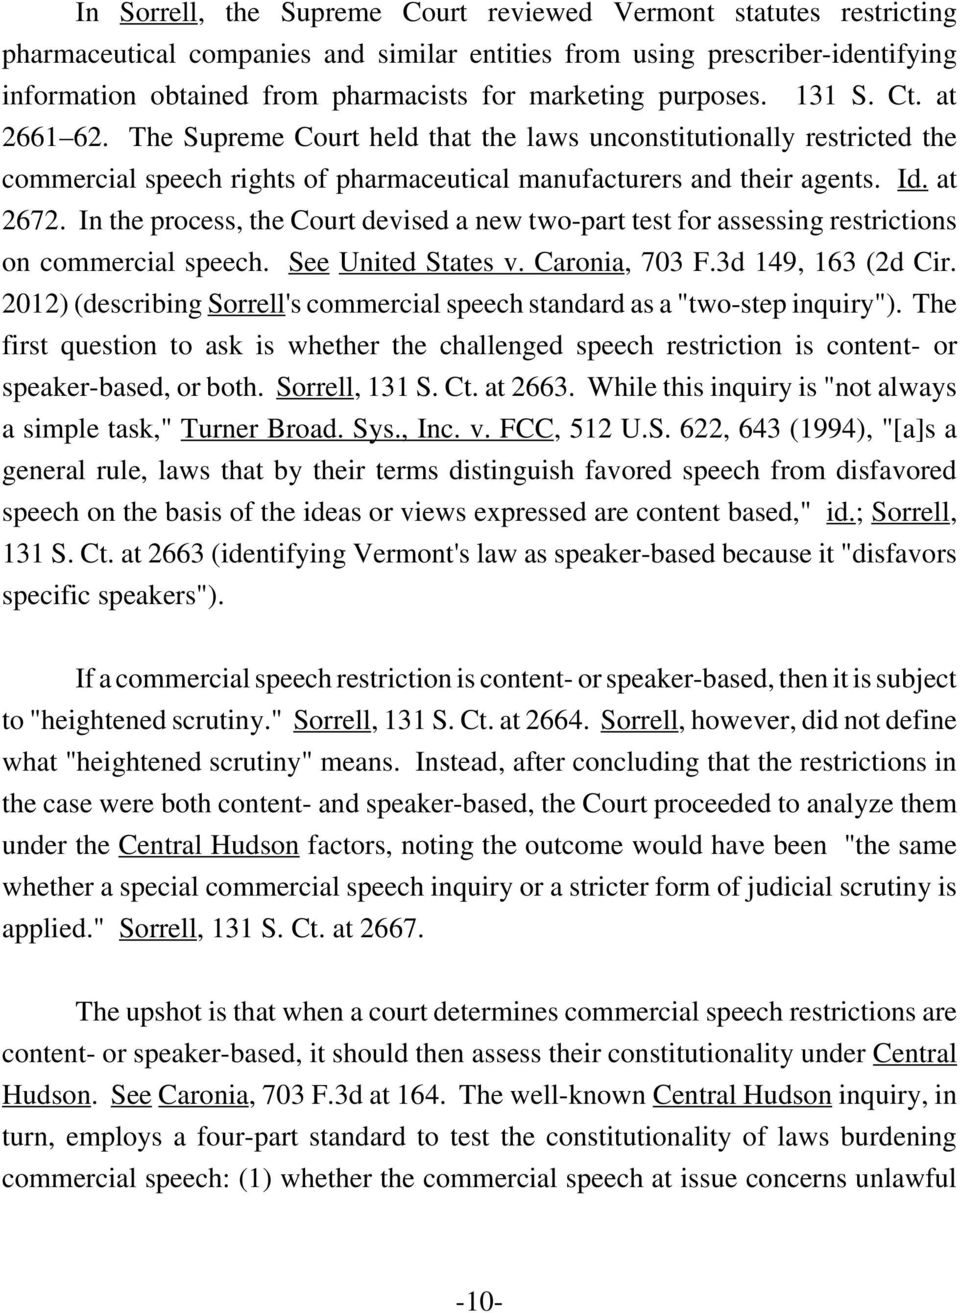 In the process, the Court devised a new two-part test for assessing restrictions on commercial speech. See United States v. Caronia, 703 F.3d 149, 163 (2d Cir.